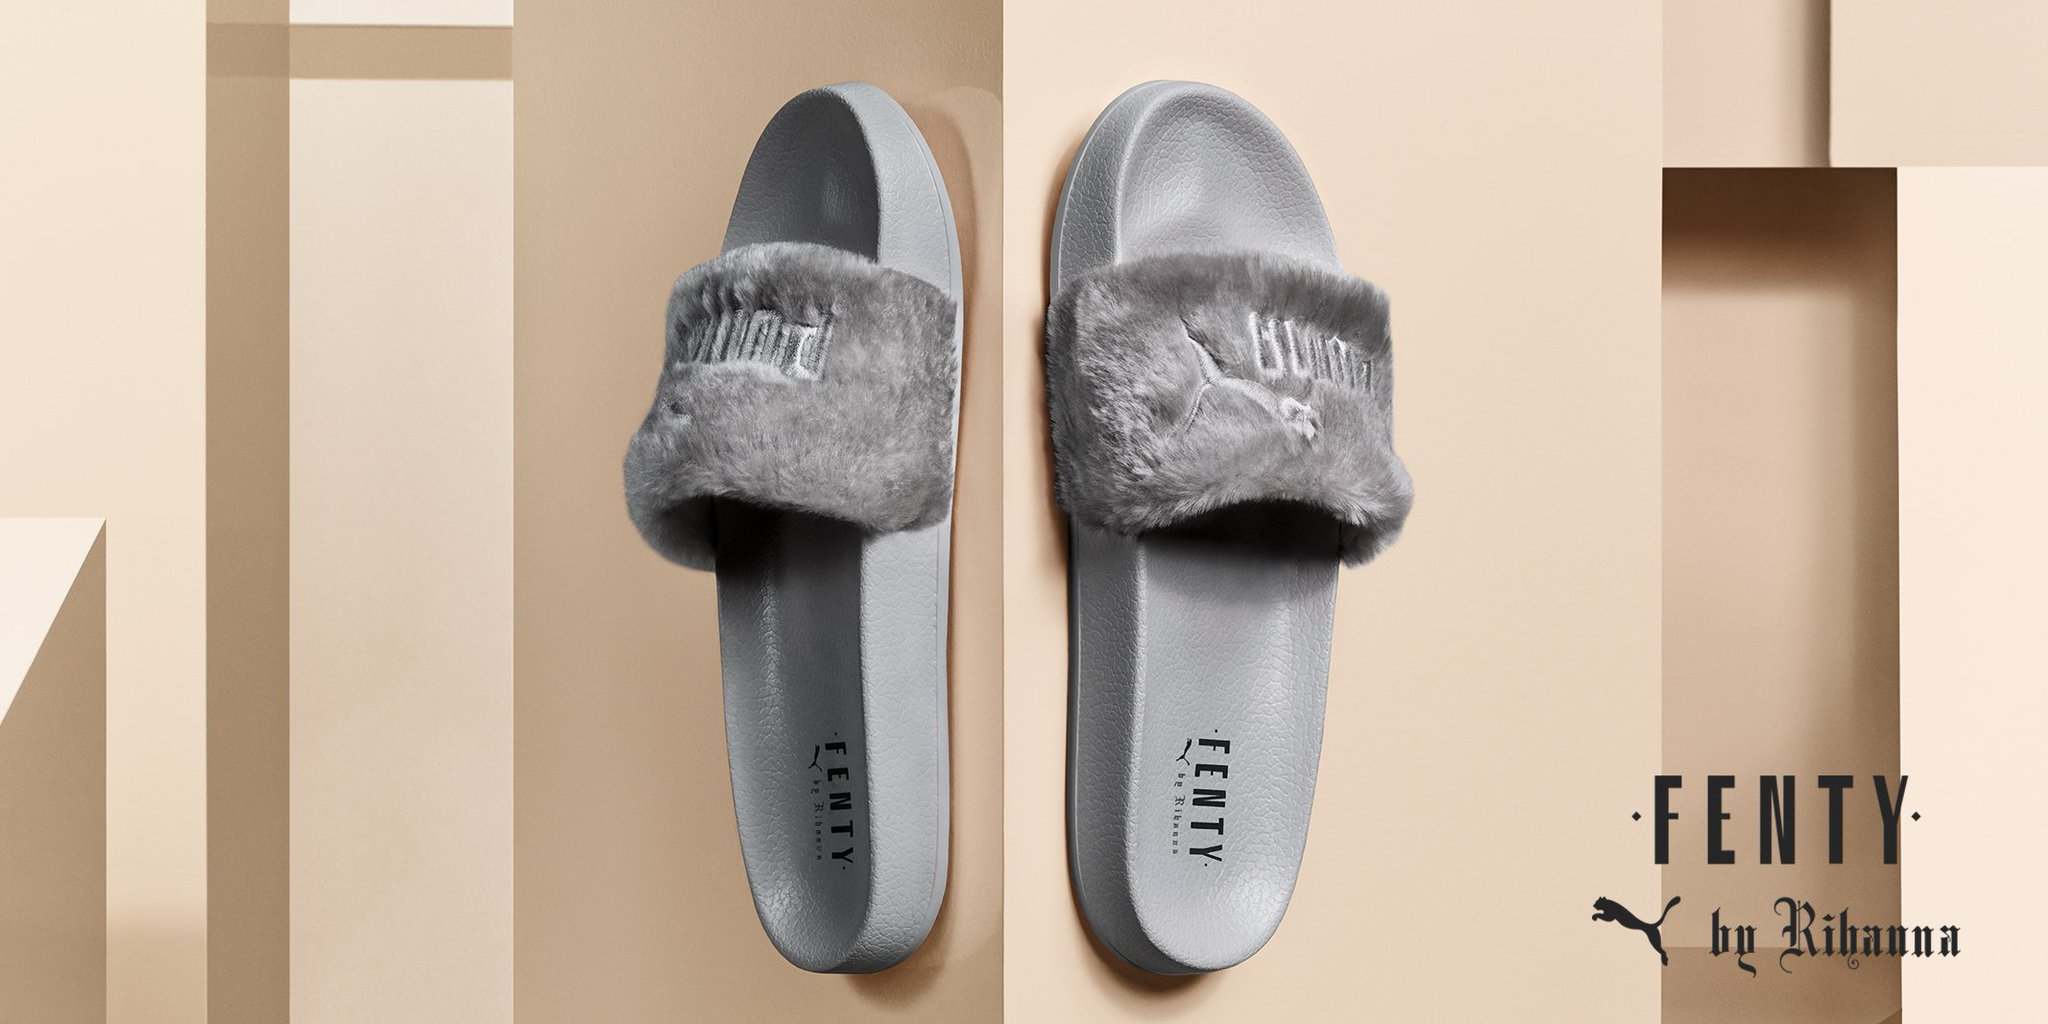 My #FENTYXPUMA FUR SLIDE is back in stock plus all new GREY color way! Get it now: https://t.co/GAkFFgYA0O https://t.co/9c3QvJYLJJ